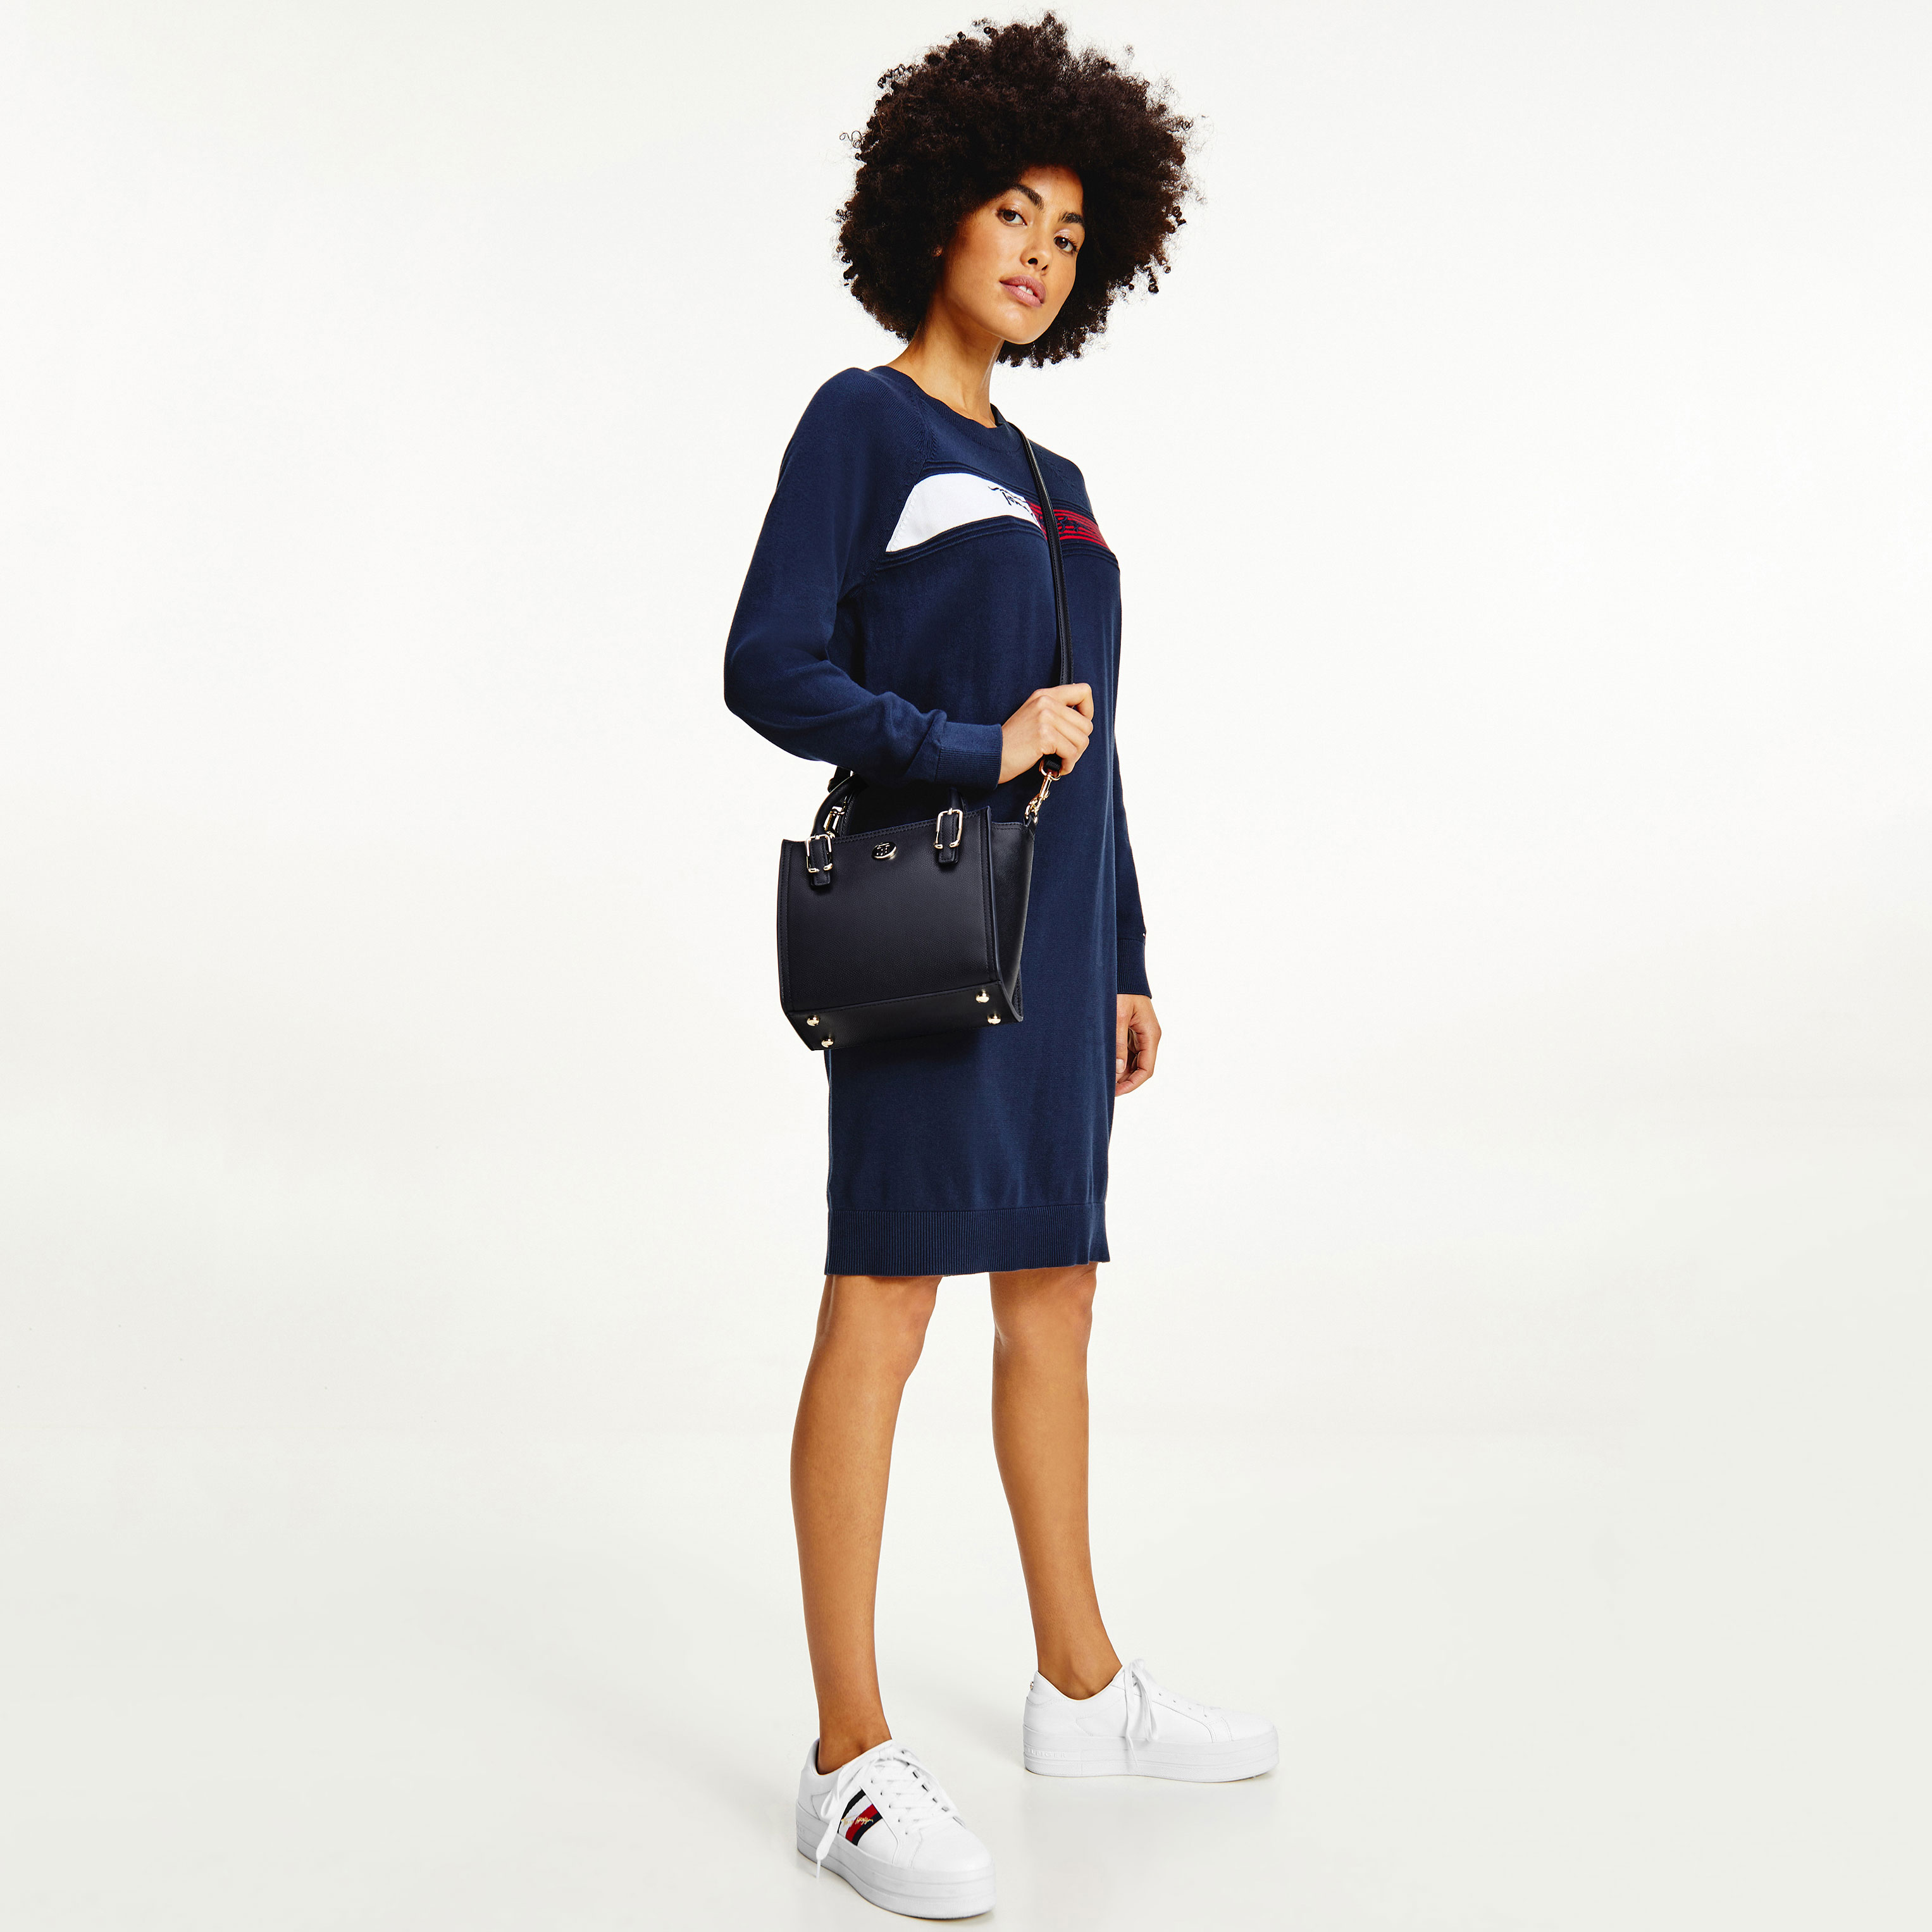 TOMMY HILFIGER Marroquinería Bolso Honey Small Tote AW0AW10449-DW5